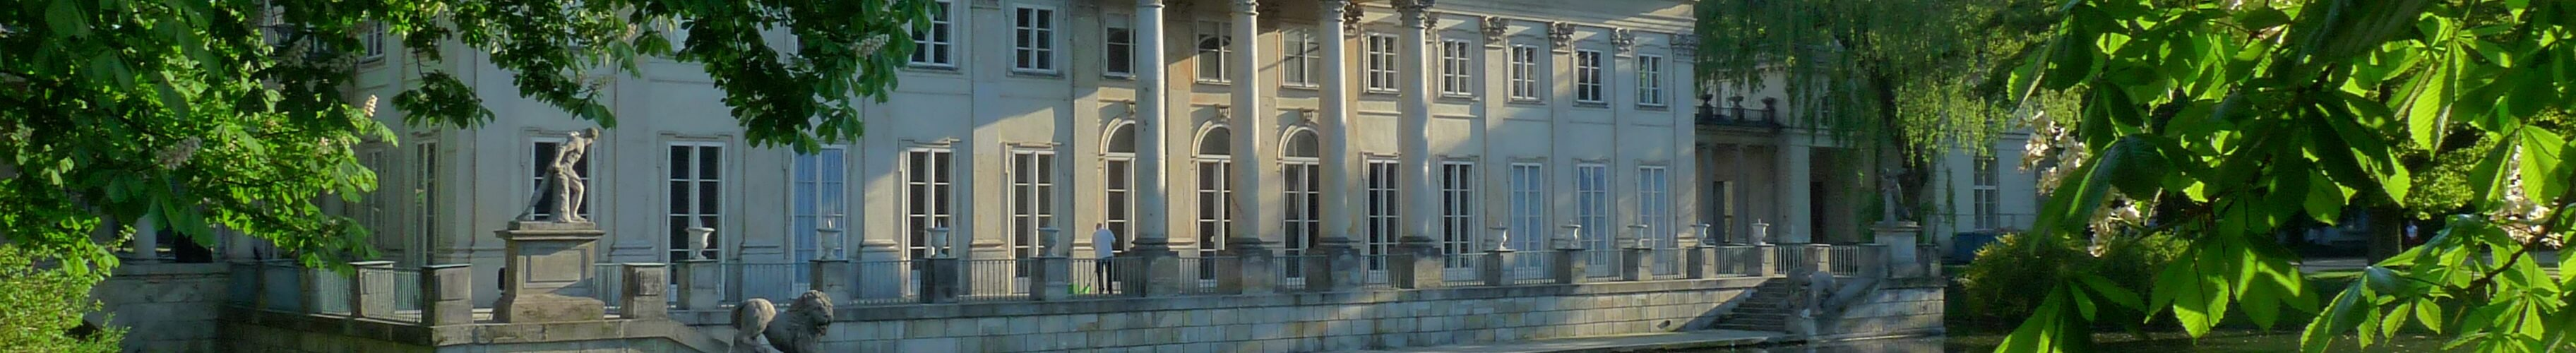 Palace on the Isle - guided tours - sightseeing Warsaw